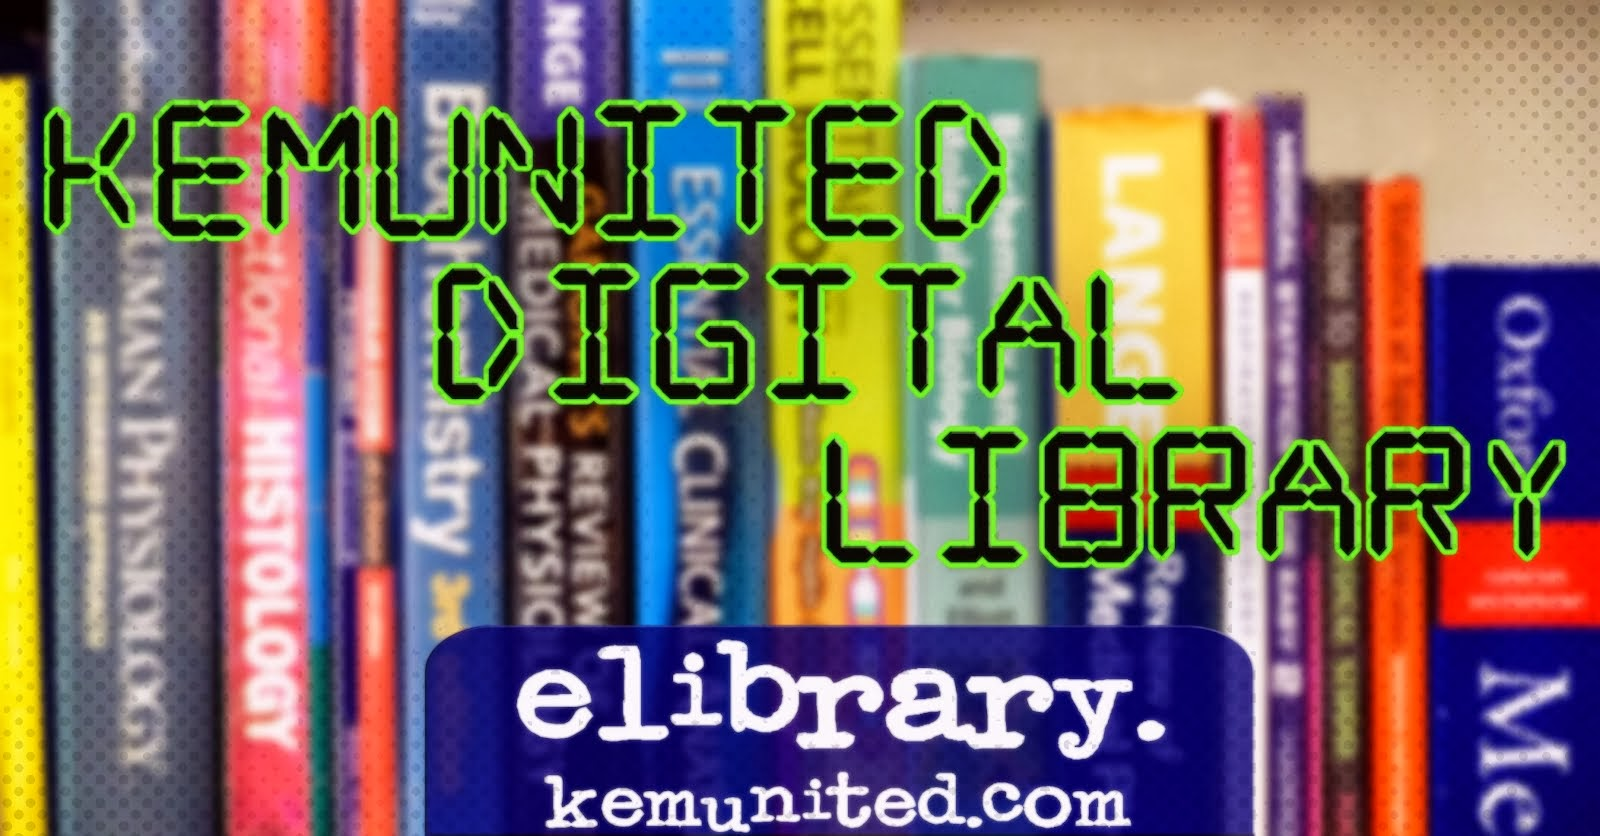 KemUnited Digital Library